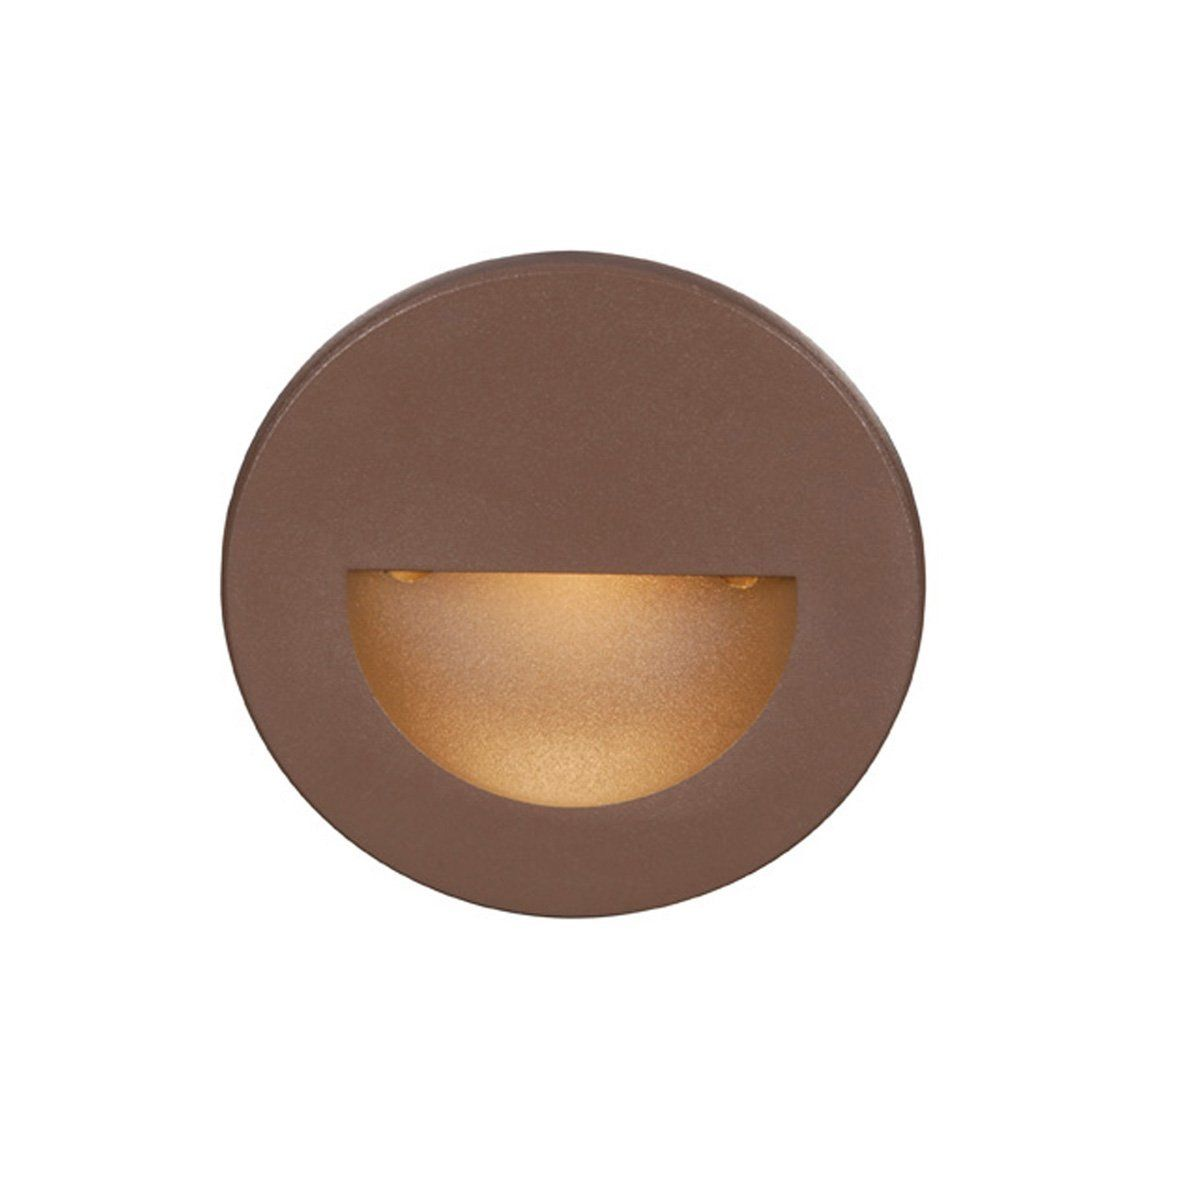 Wac lighting wl led300 c bz circular scoop 4w 120v led step light wac lighting led circular step light from the ledme collection bronze outdoor lighting landscape lighting hardscape lights mozeypictures Images